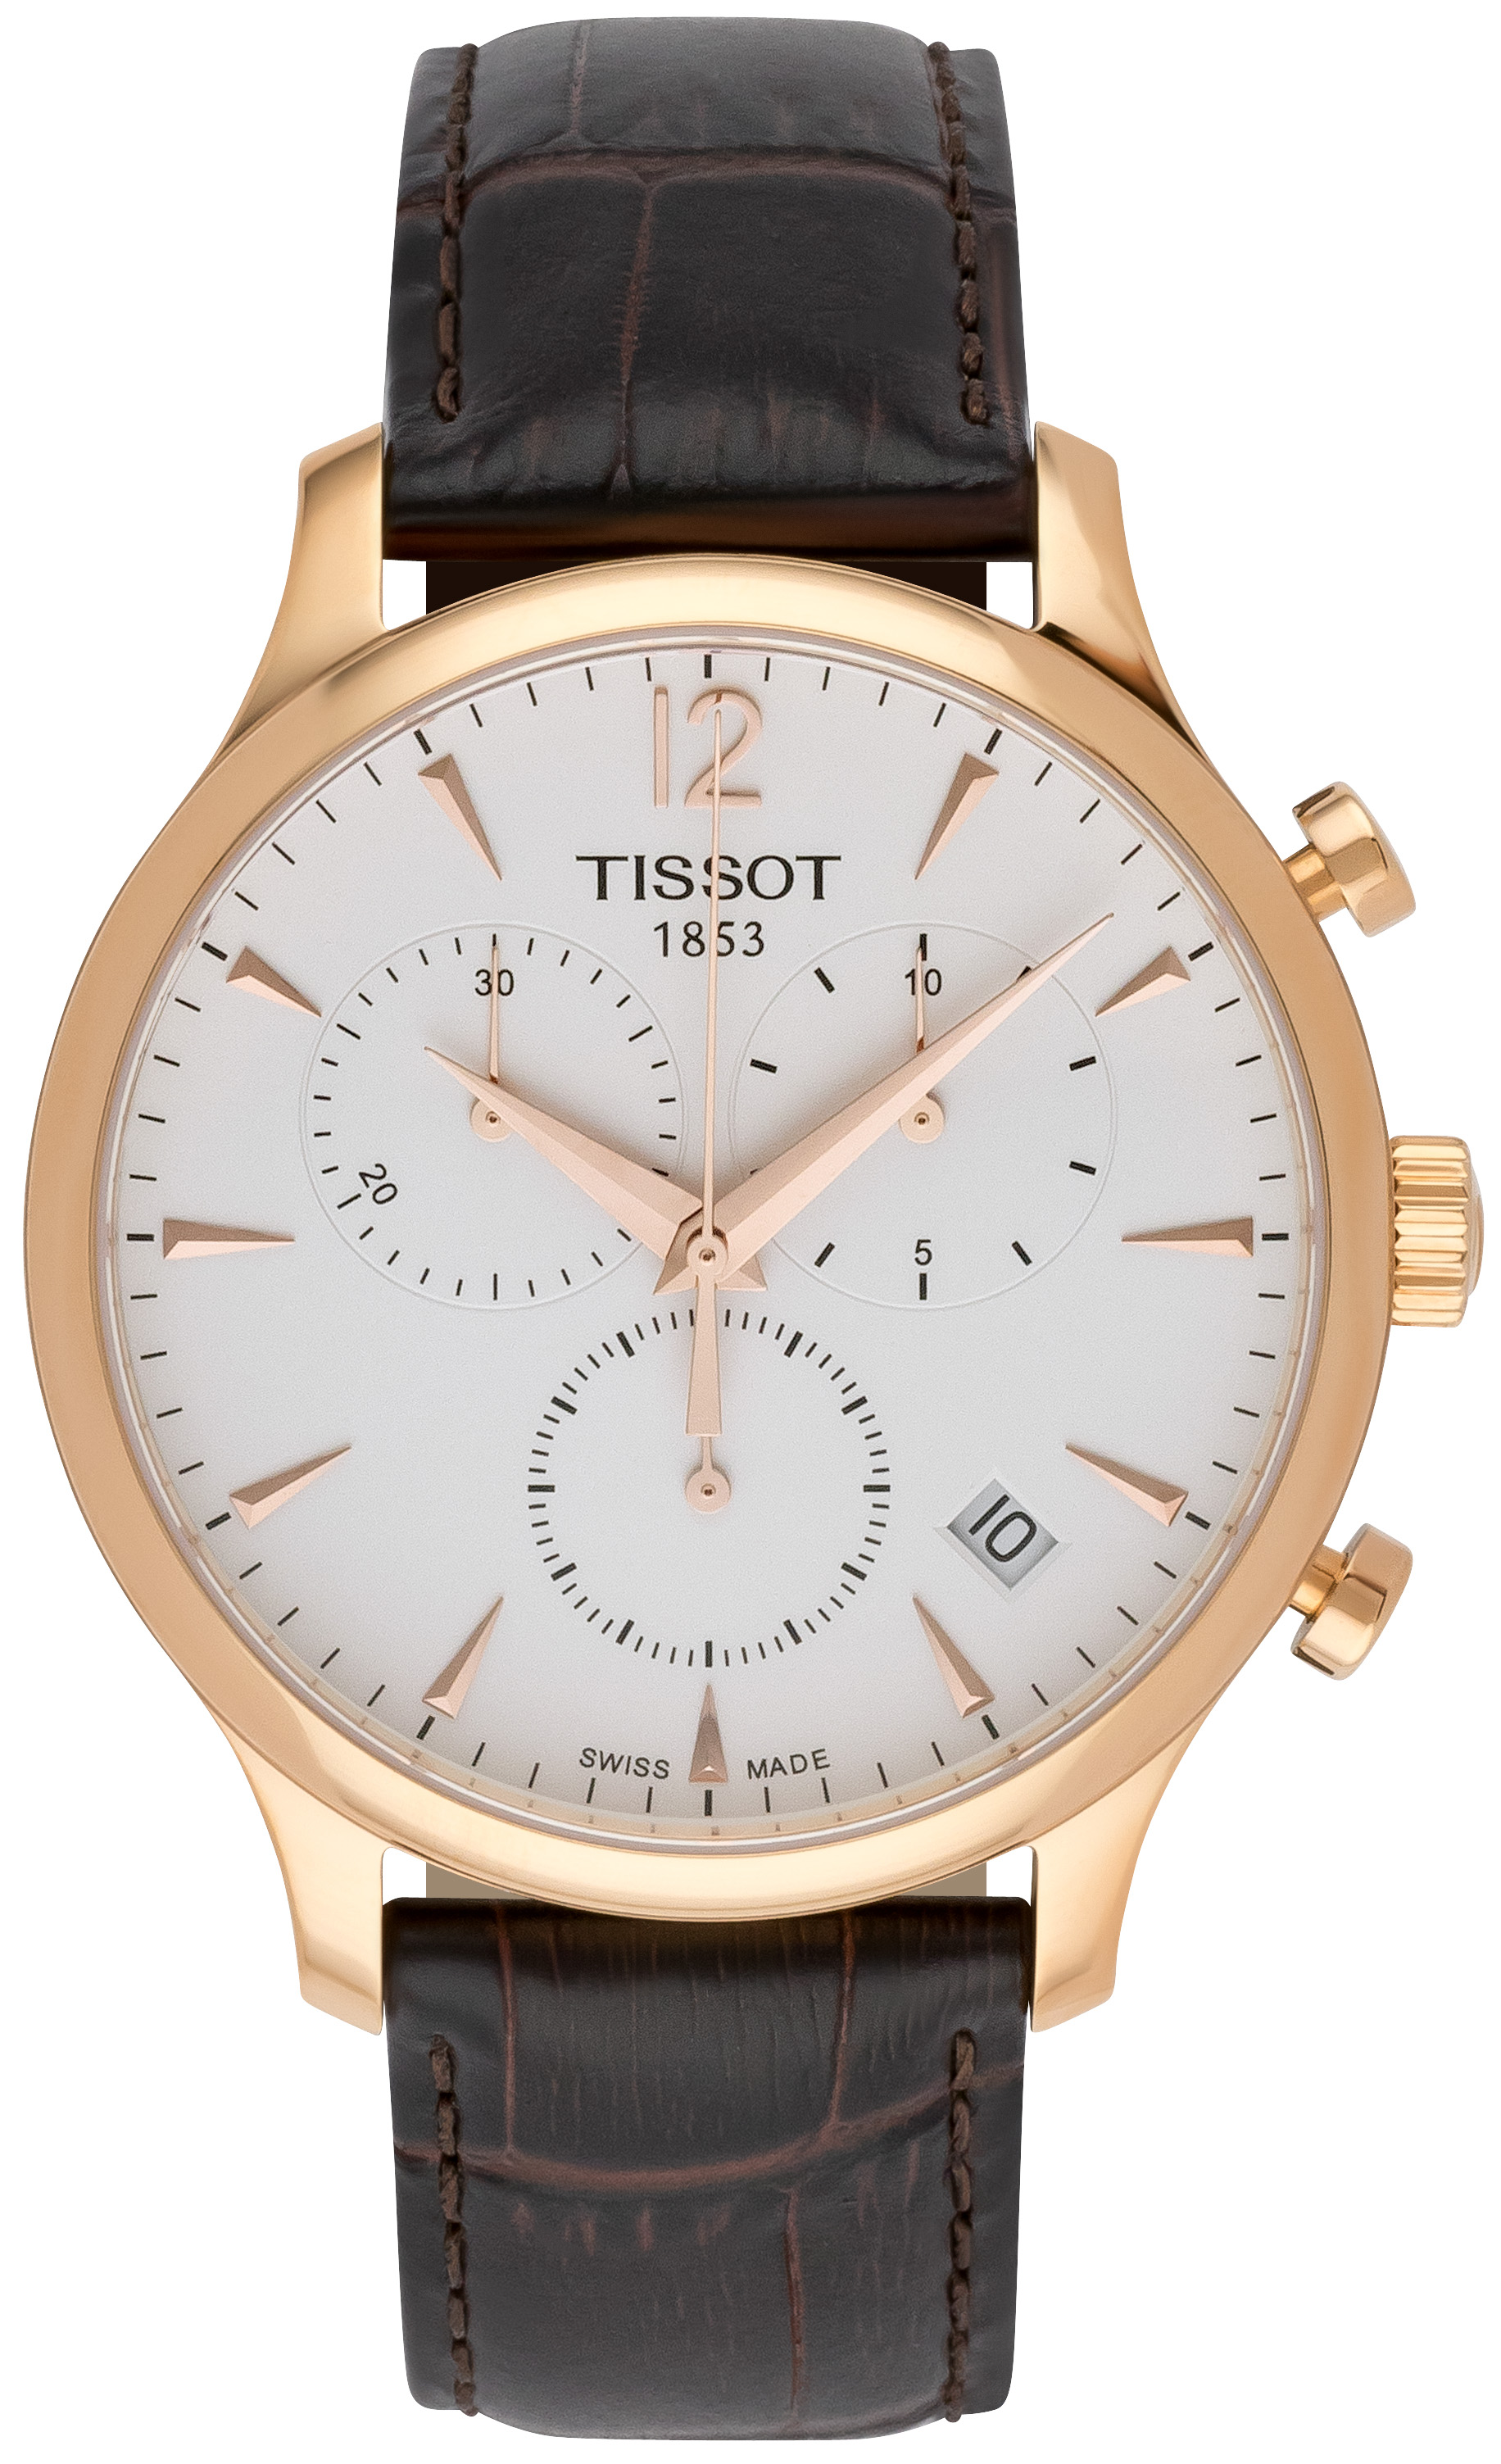 Tissot Tradition Herrklocka T063.617.36.037.00 Vit/Läder Ø42 mm